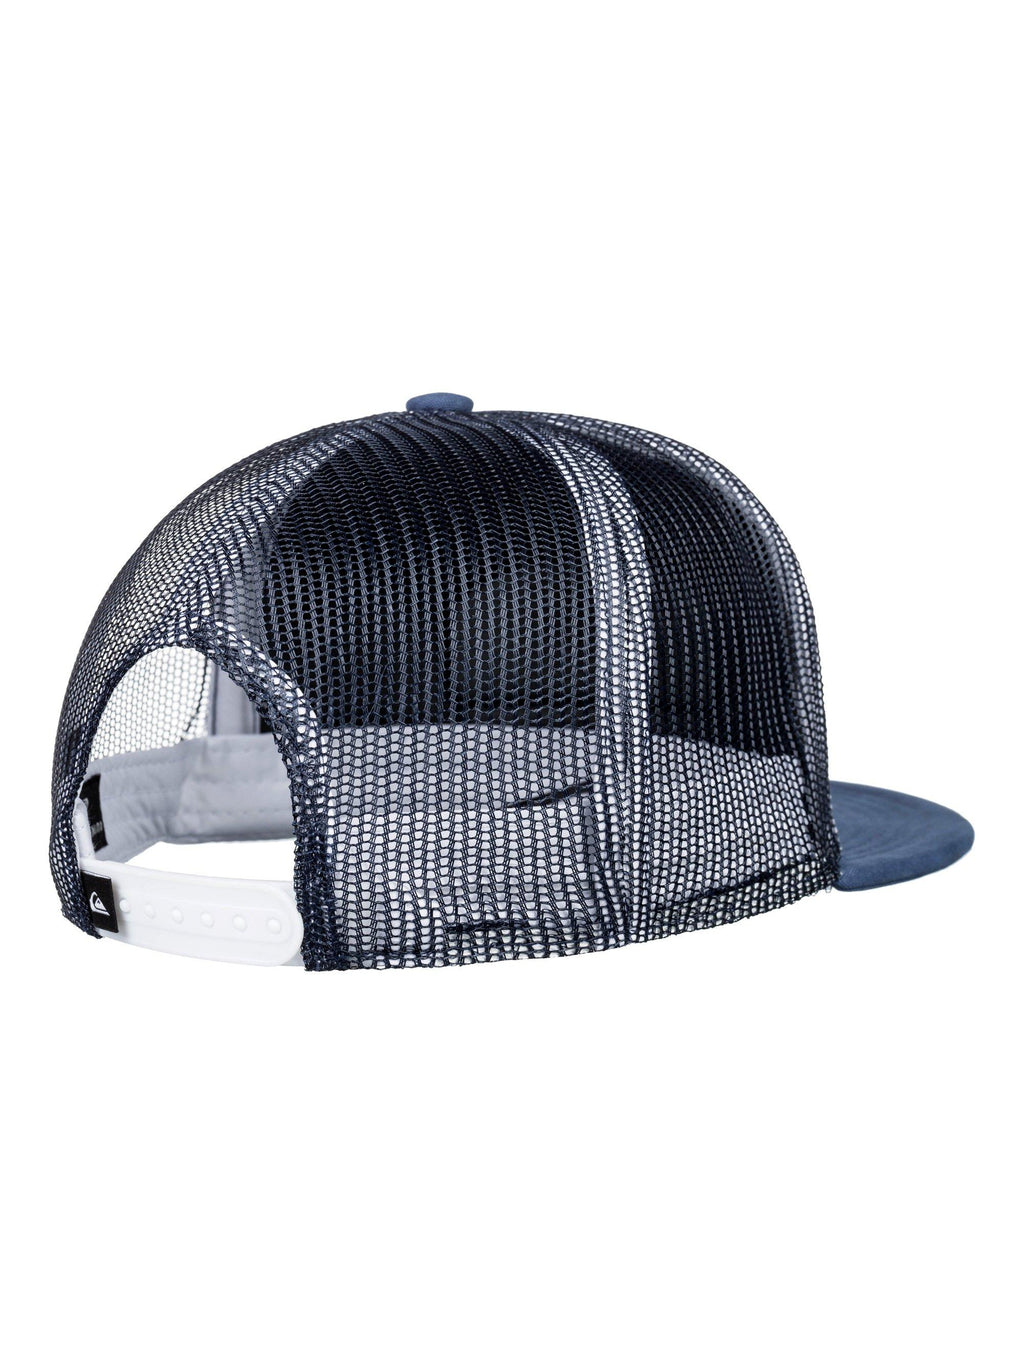 Past Checker Hat - Men's